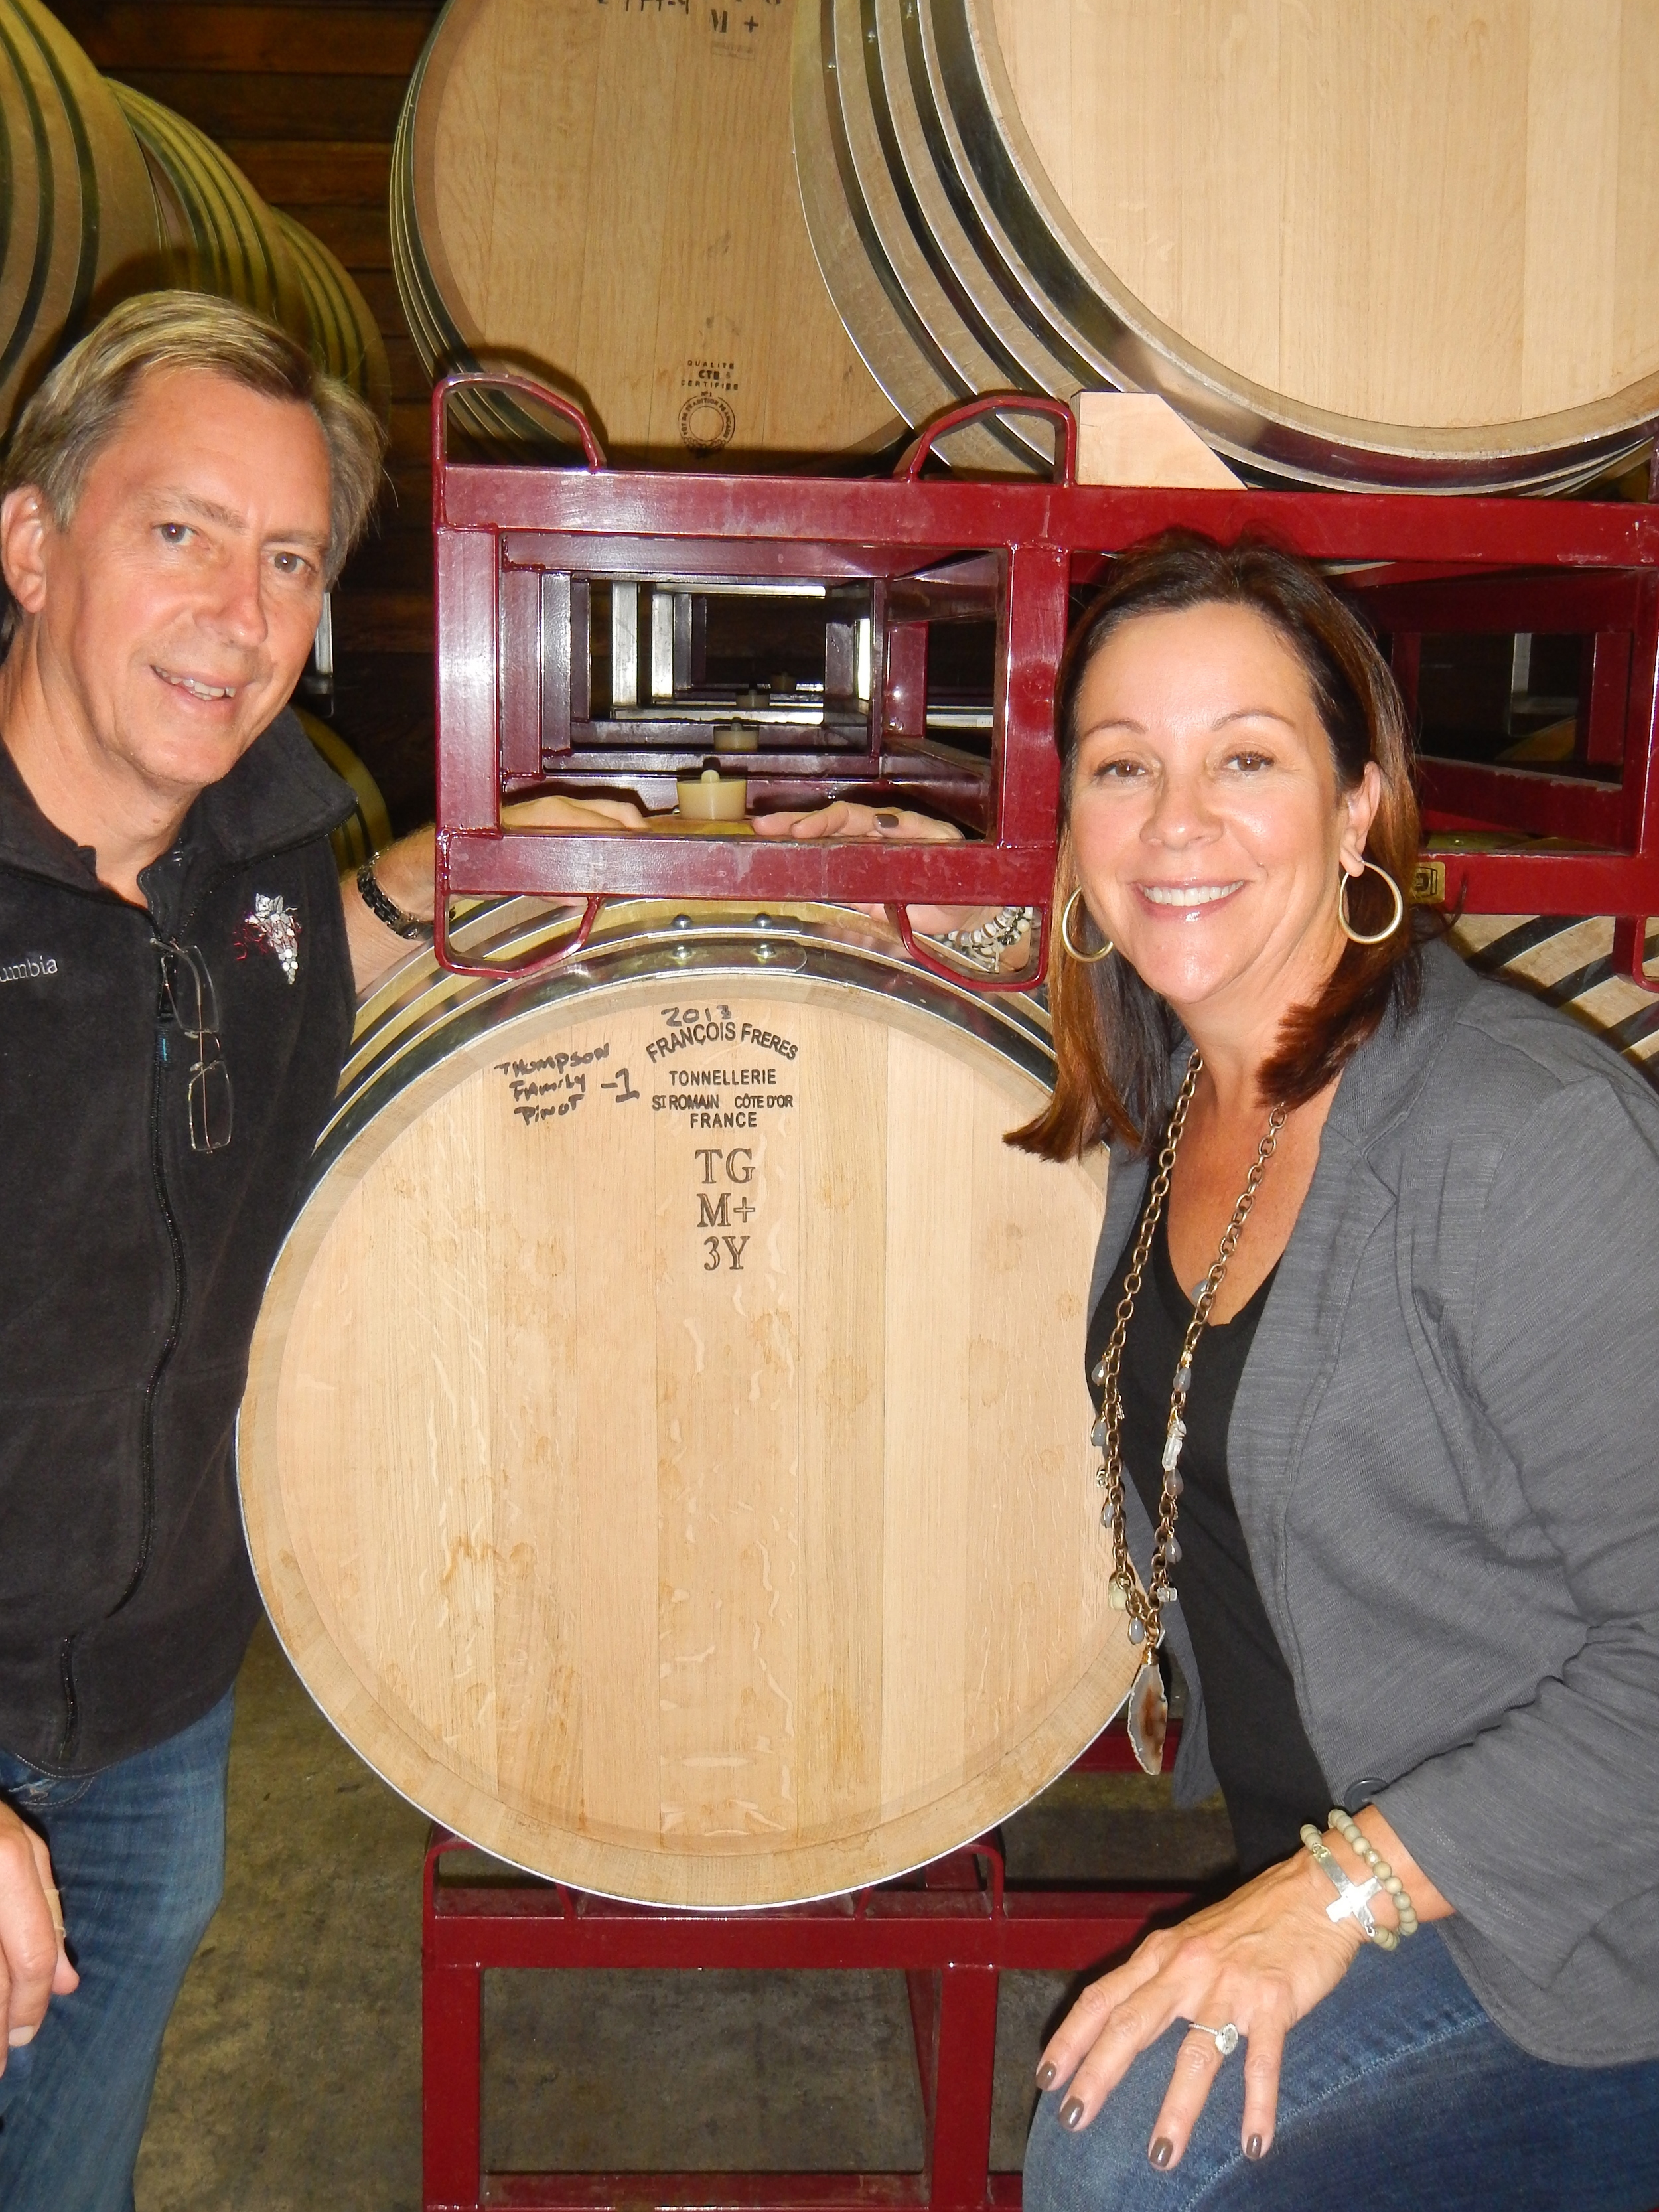 This is the first 2013 vintage RRV Pinot Noir in the barrel.